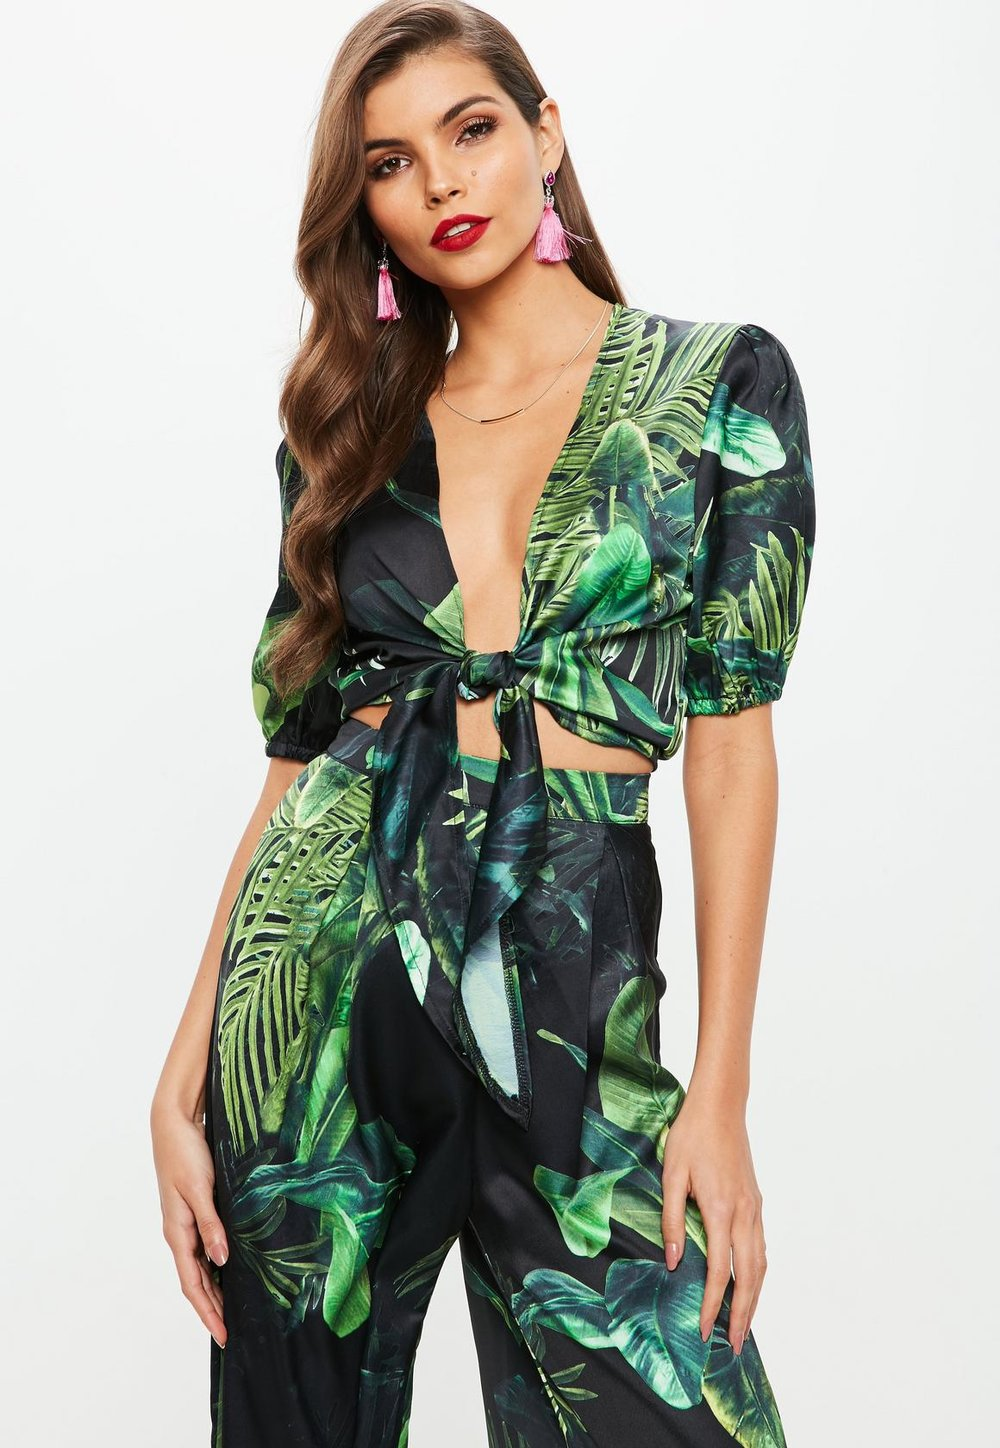 Green leaf co-ord - This beautifully vibrant palm printed top & bottom from MissGuided would be a perfect addition to your Spring/Summer wardrobe You can wear the pieces together or separately, opting for a simple white tee with the pants or go a little more bold and add some stripes!